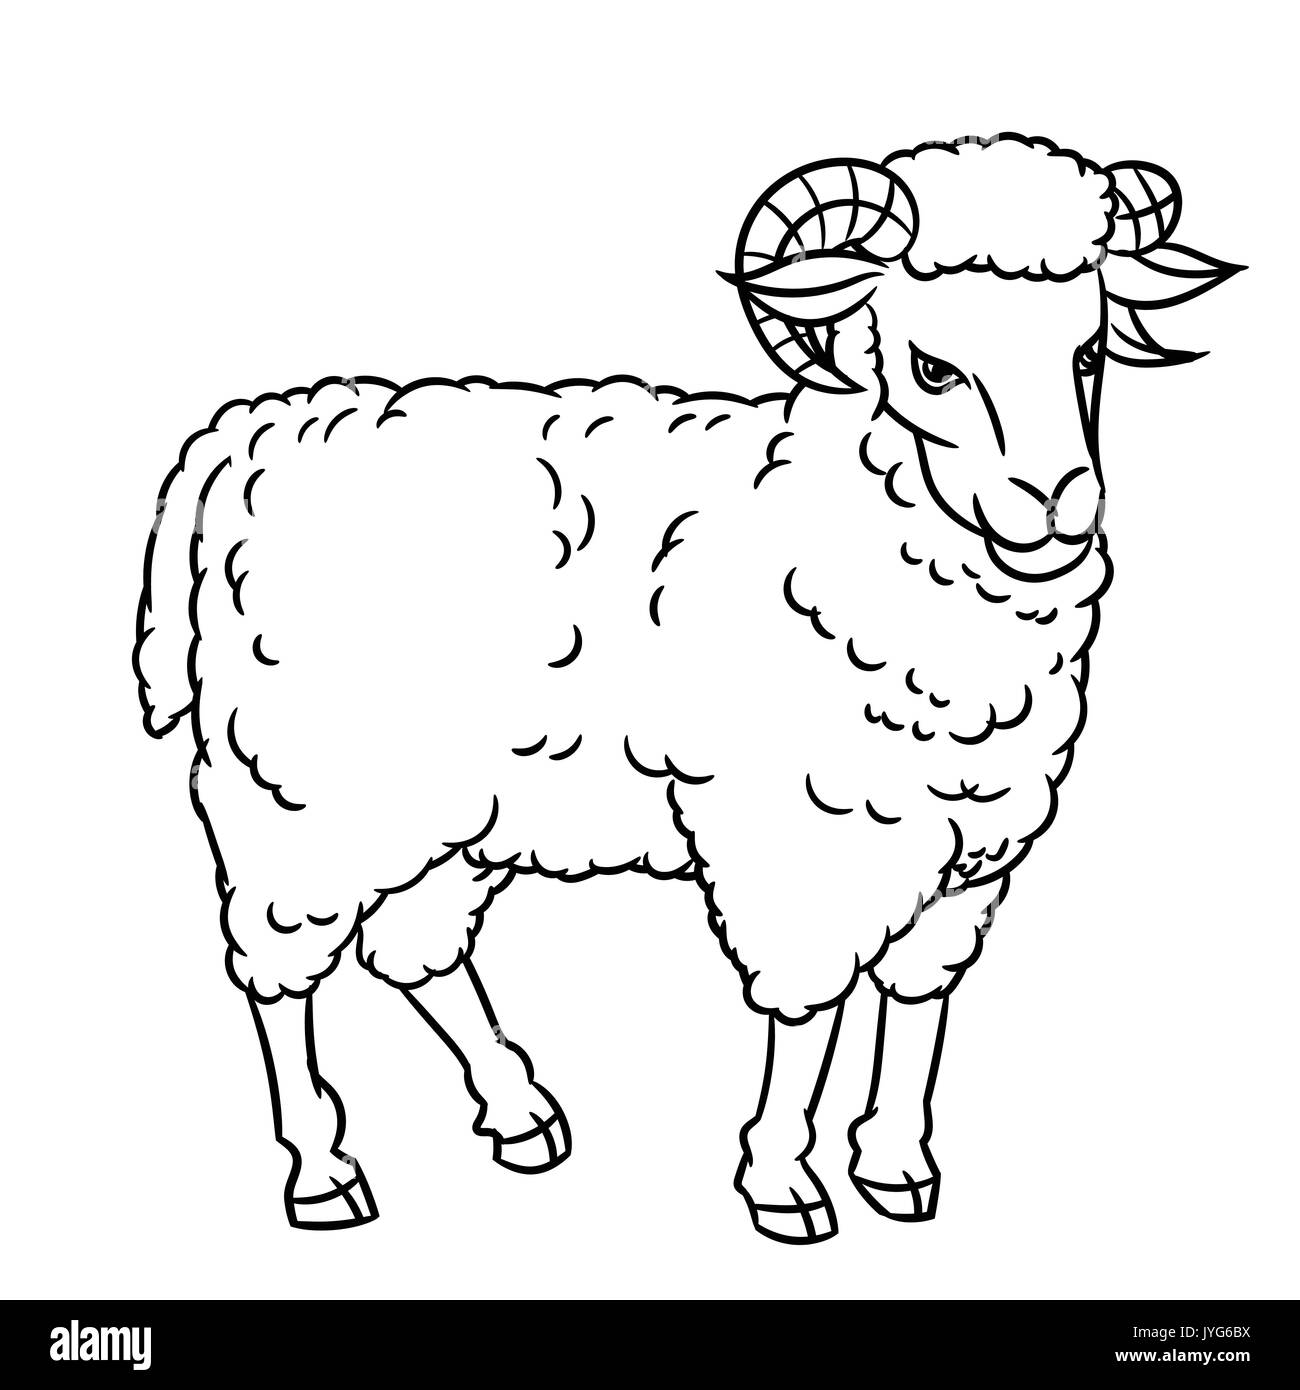 Image of: Art Hand Drawing Sheep Farm Animals Set Sketch Graphic Style Design For Education Text Book Coloring Book Alamy Hand Drawing Sheep Farm Animals Set Sketch Graphic Style Design